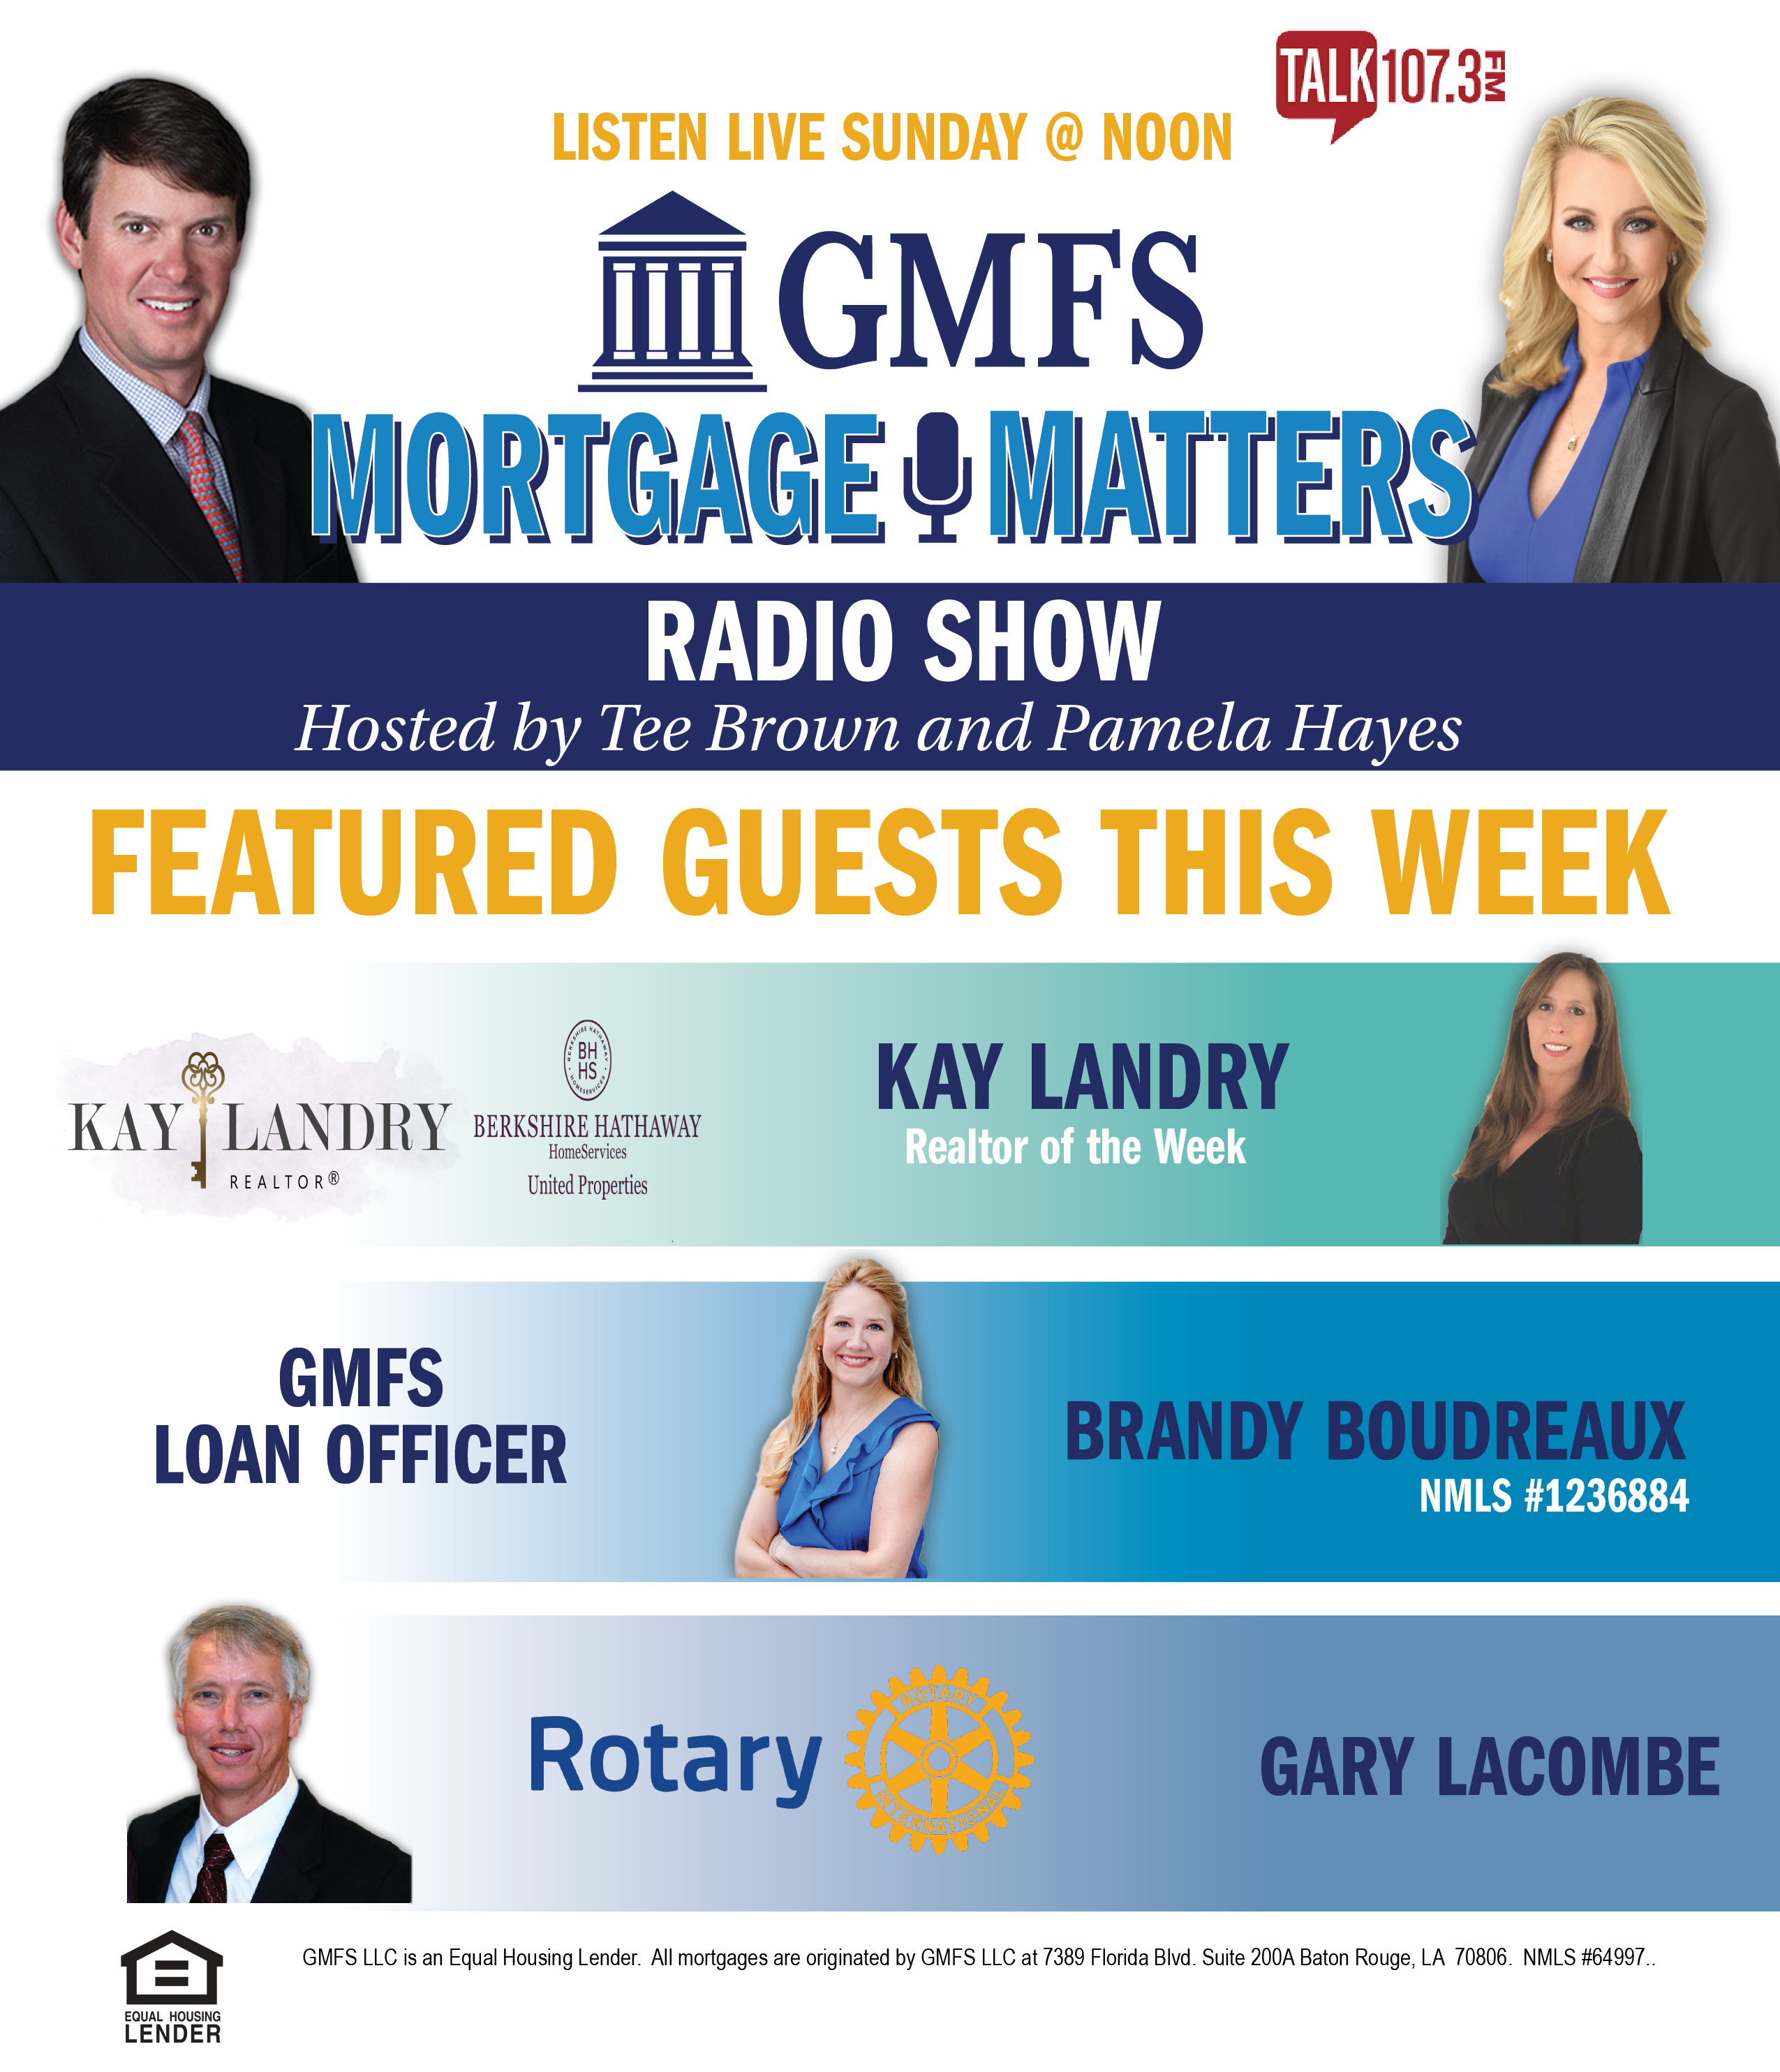 GMFS Mortgage Matters Radio Show Weekly Line Up - TALK107.3FM Baton Rouge